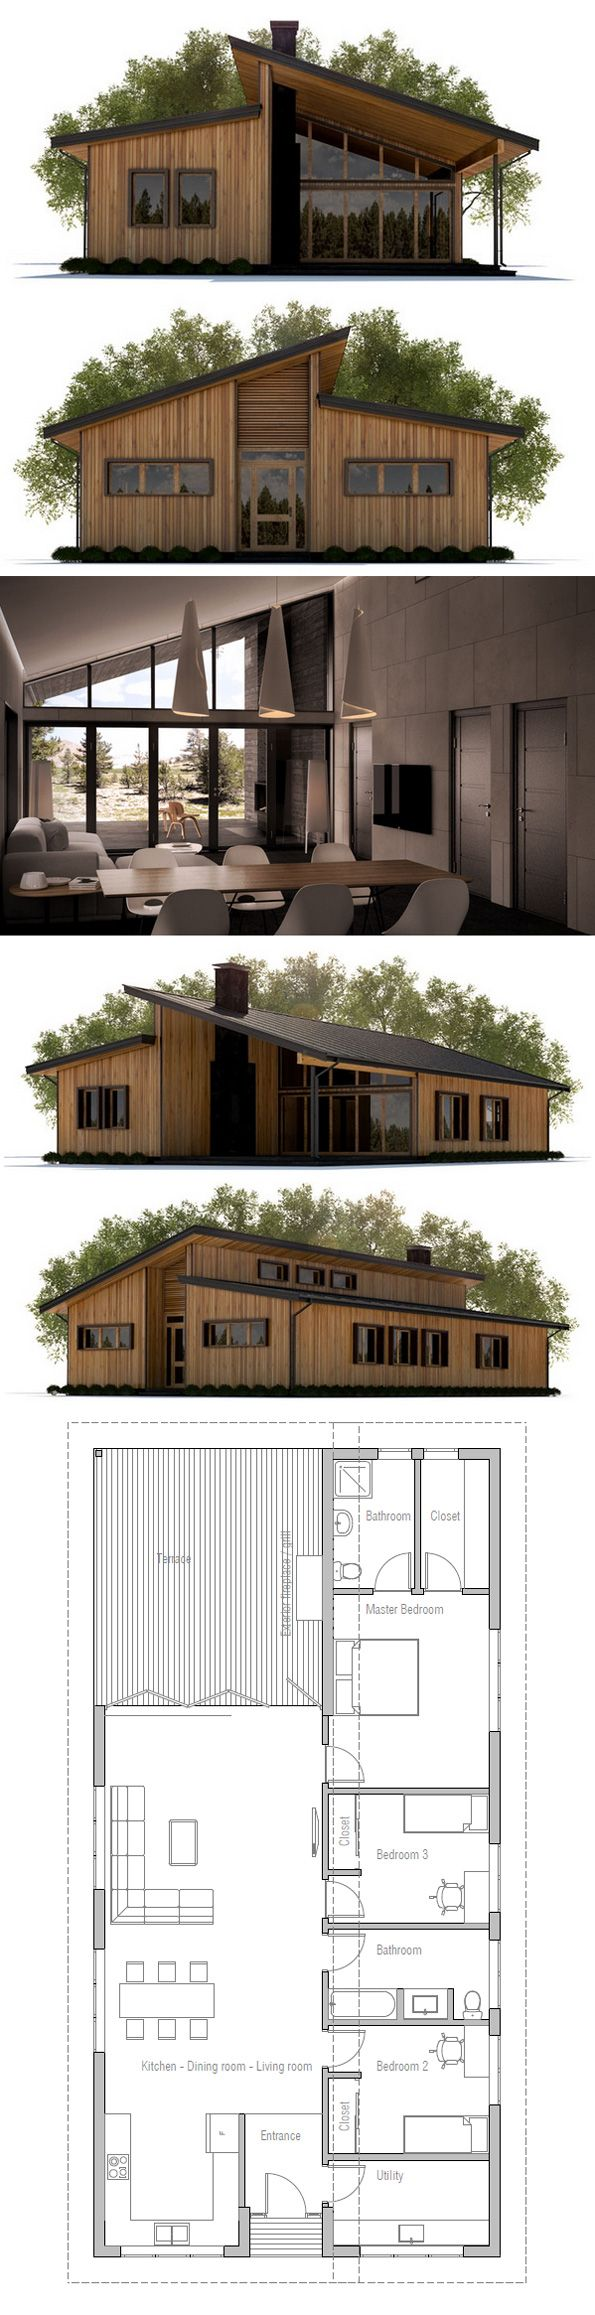 70 best images about quonset hut homes on pinterest for House plans hut